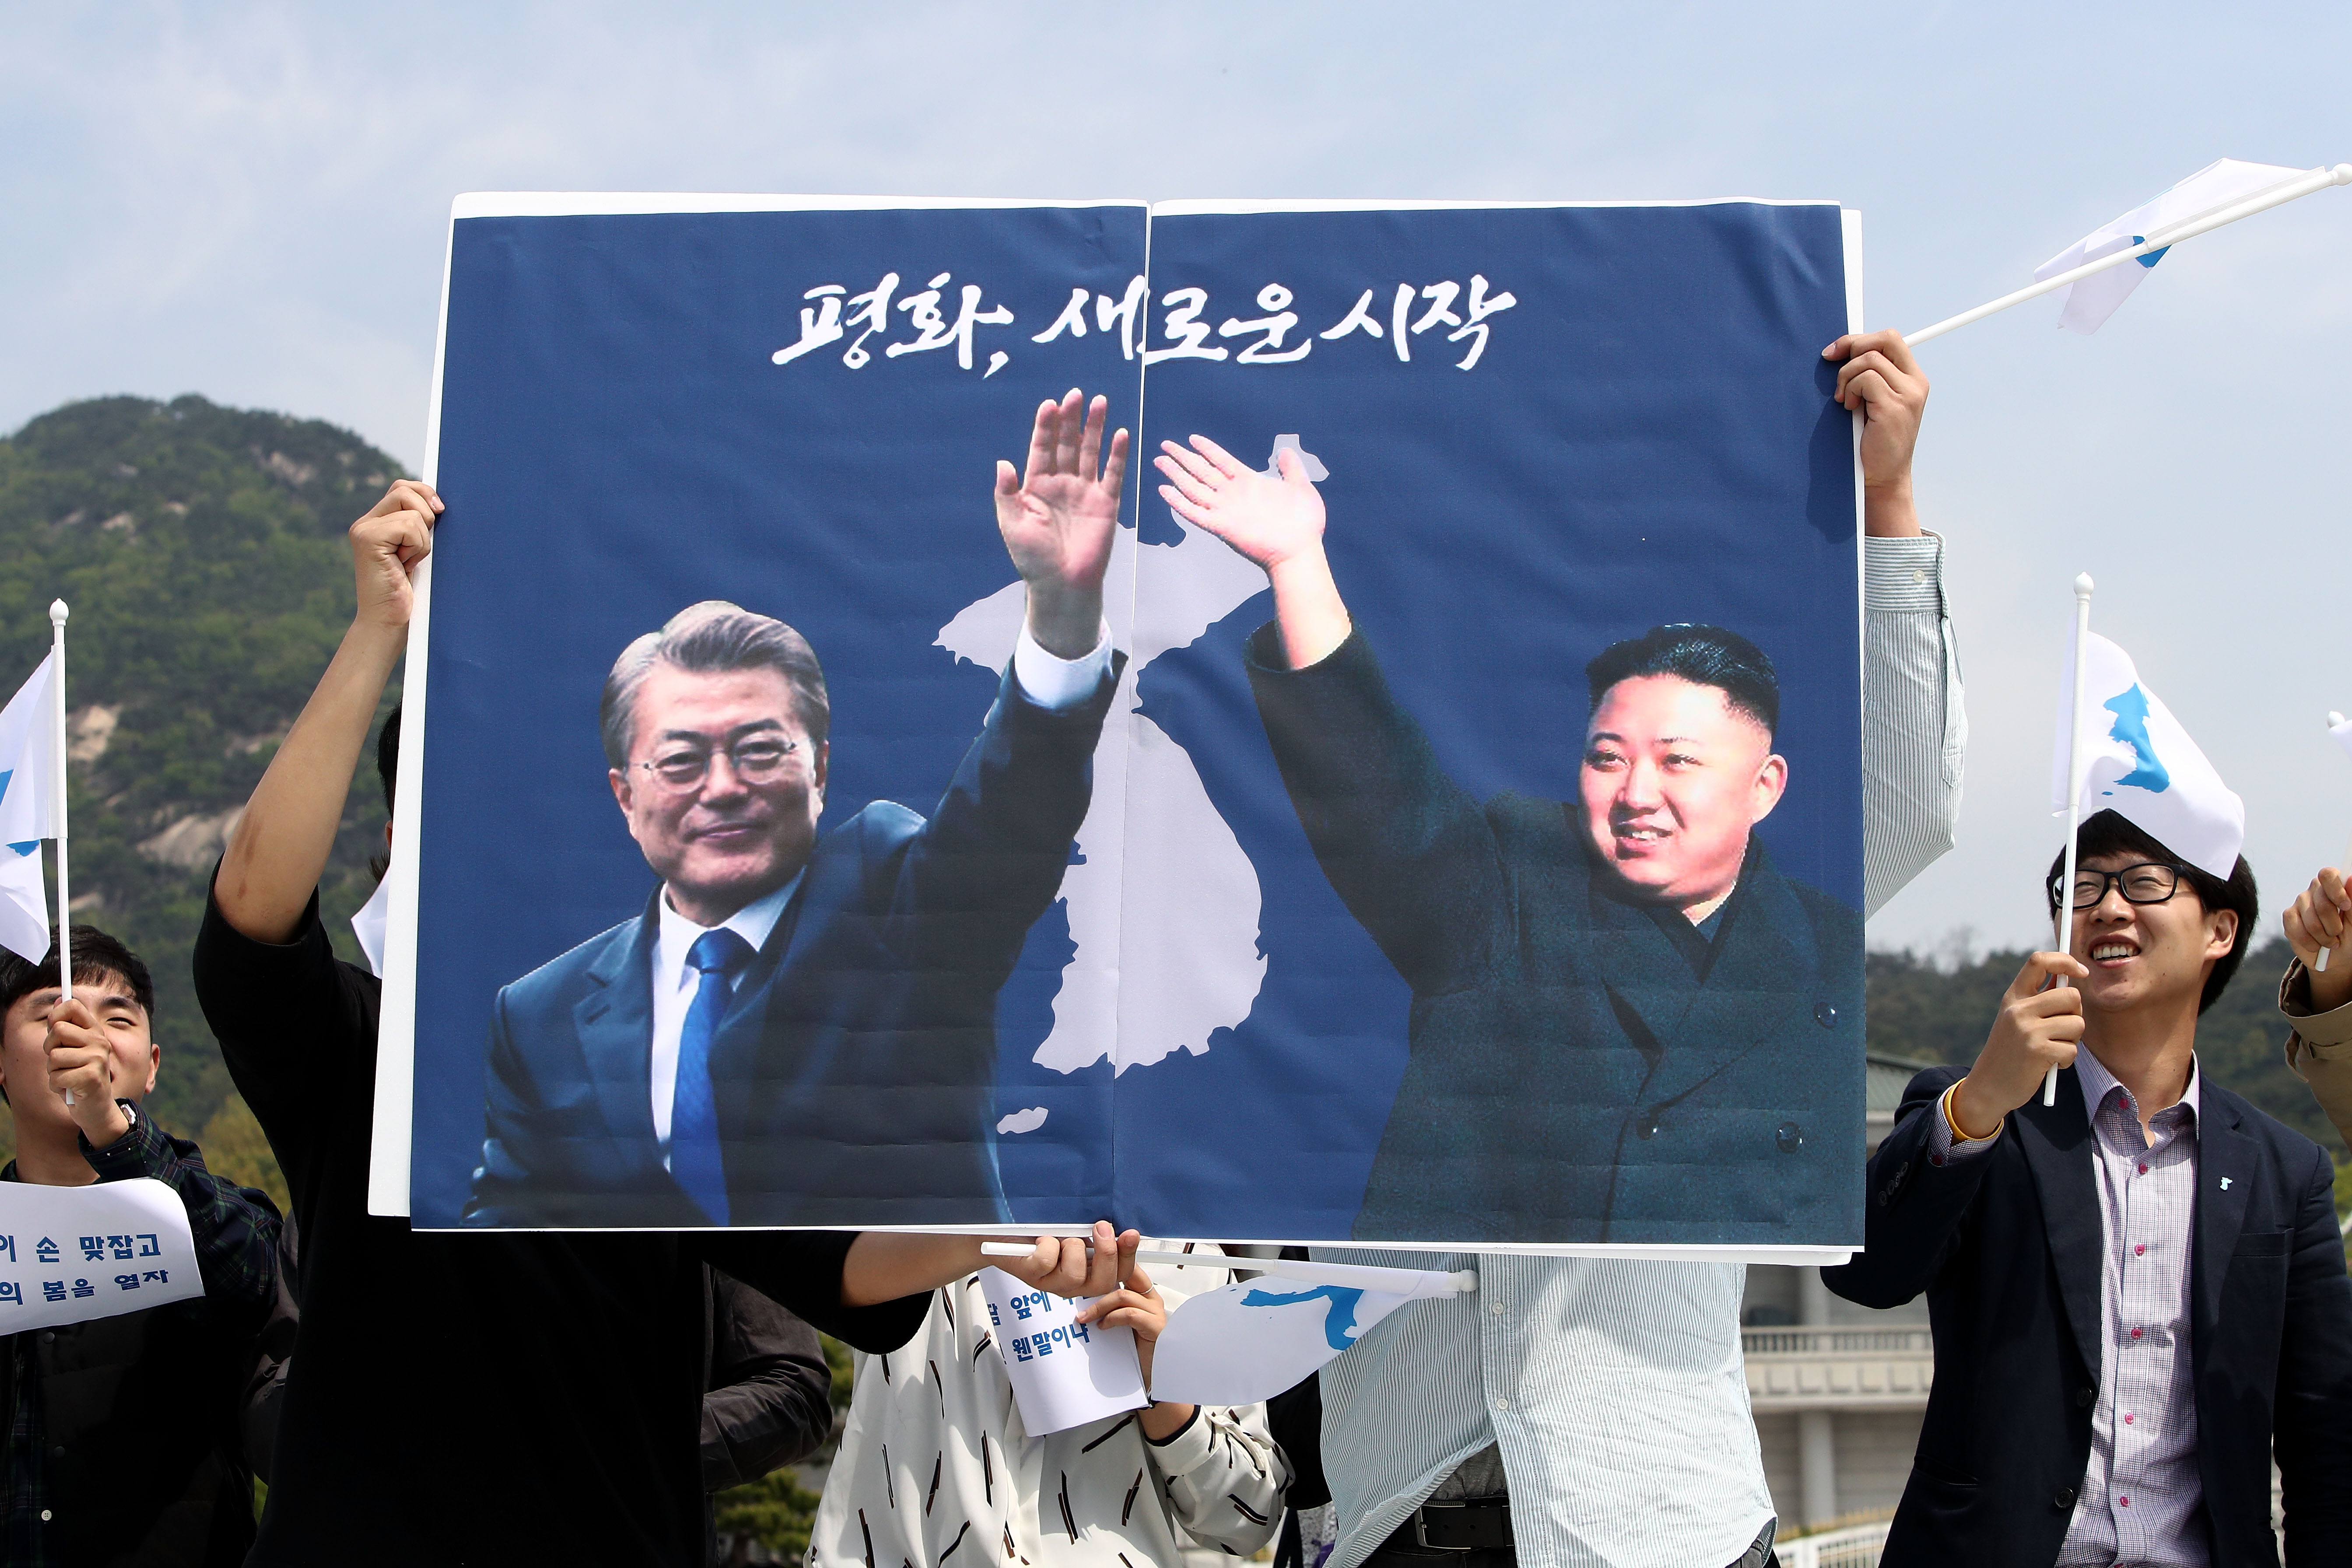 South Koreans hold up placards of South Korean President Moon Jae-In and North Korean leader Kim Jung-Un in front of Presidential Blue House  in Seoul, South Korea on April 26, 2018.